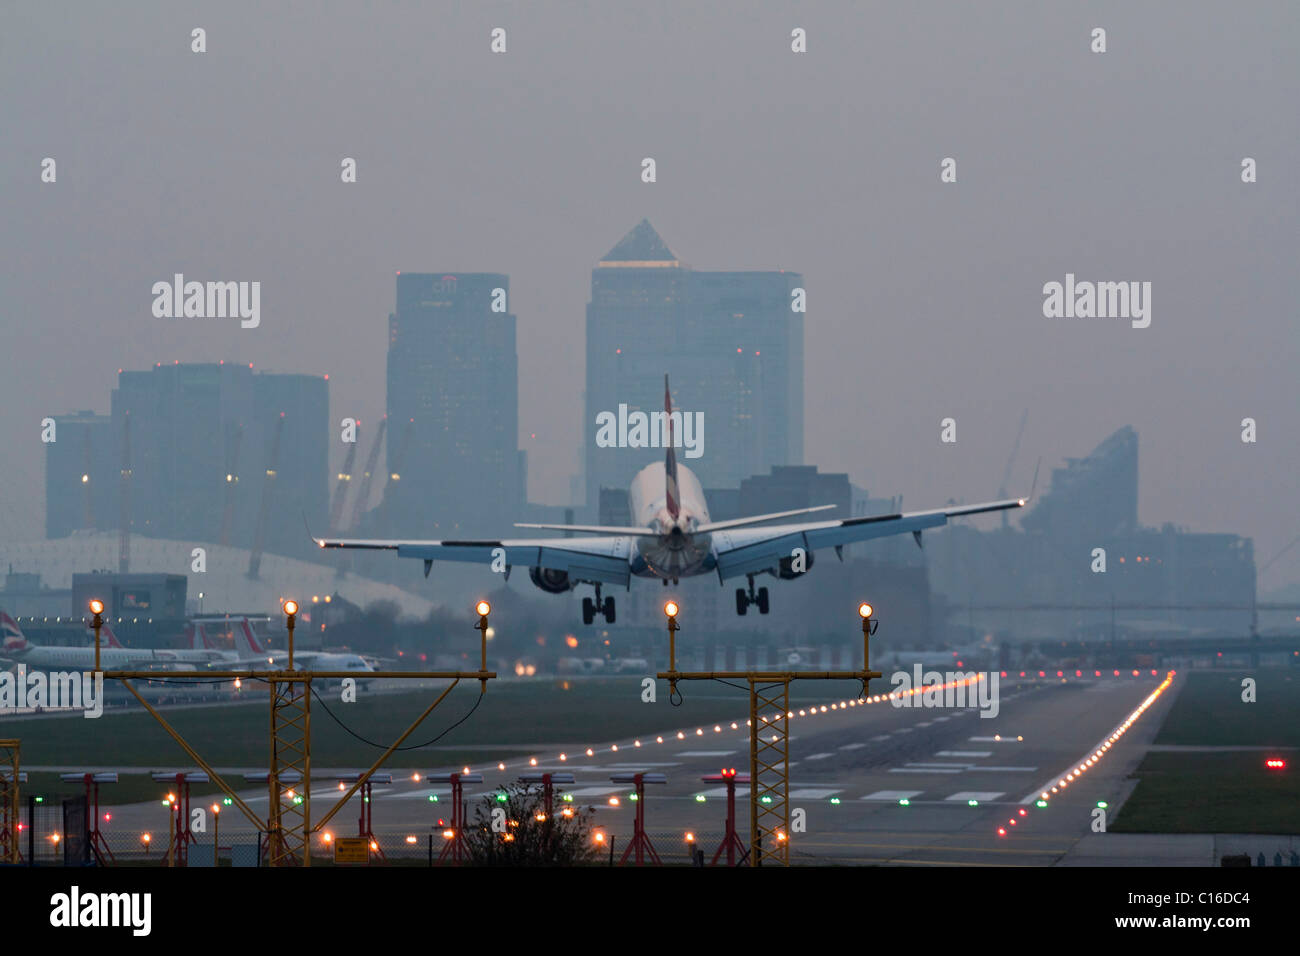 Airbus A318 Landing - London City Airport - Docklands - Stock Image